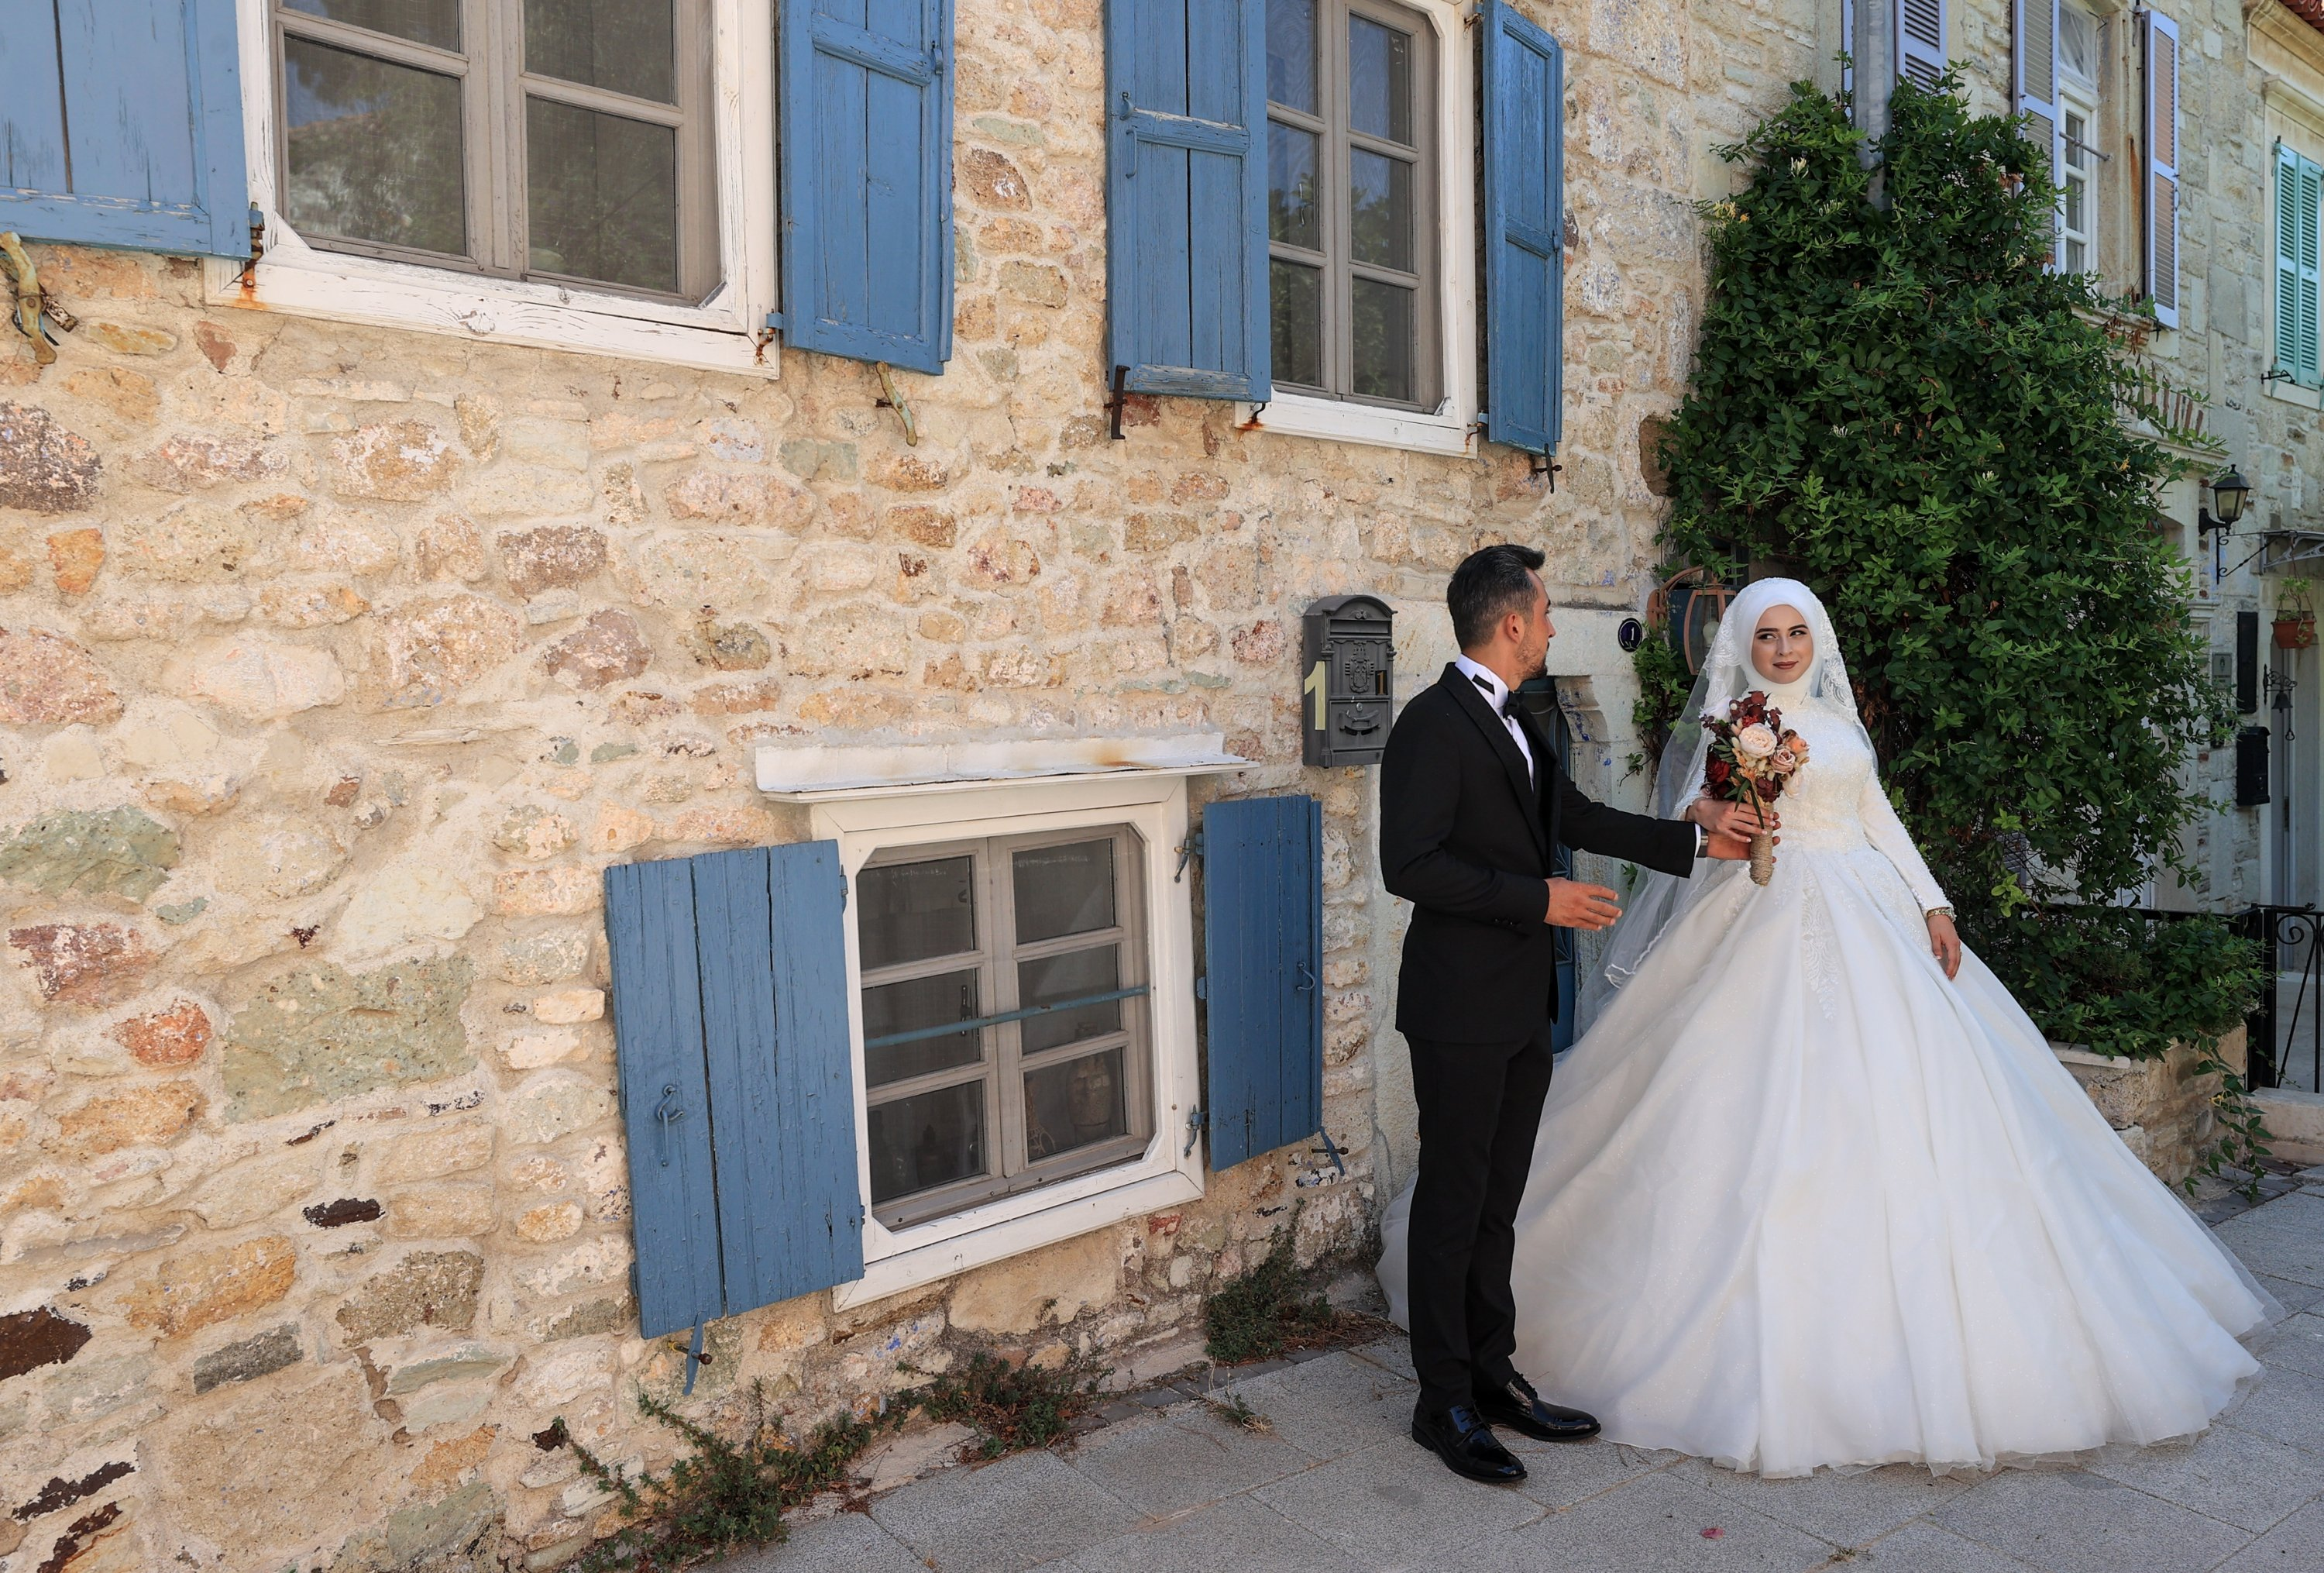 A bride and groom pose for their wedding photos in front of a stone house in Foça district, Izmir, western Turkey, Aug. 18, 2021. (AA Photo)